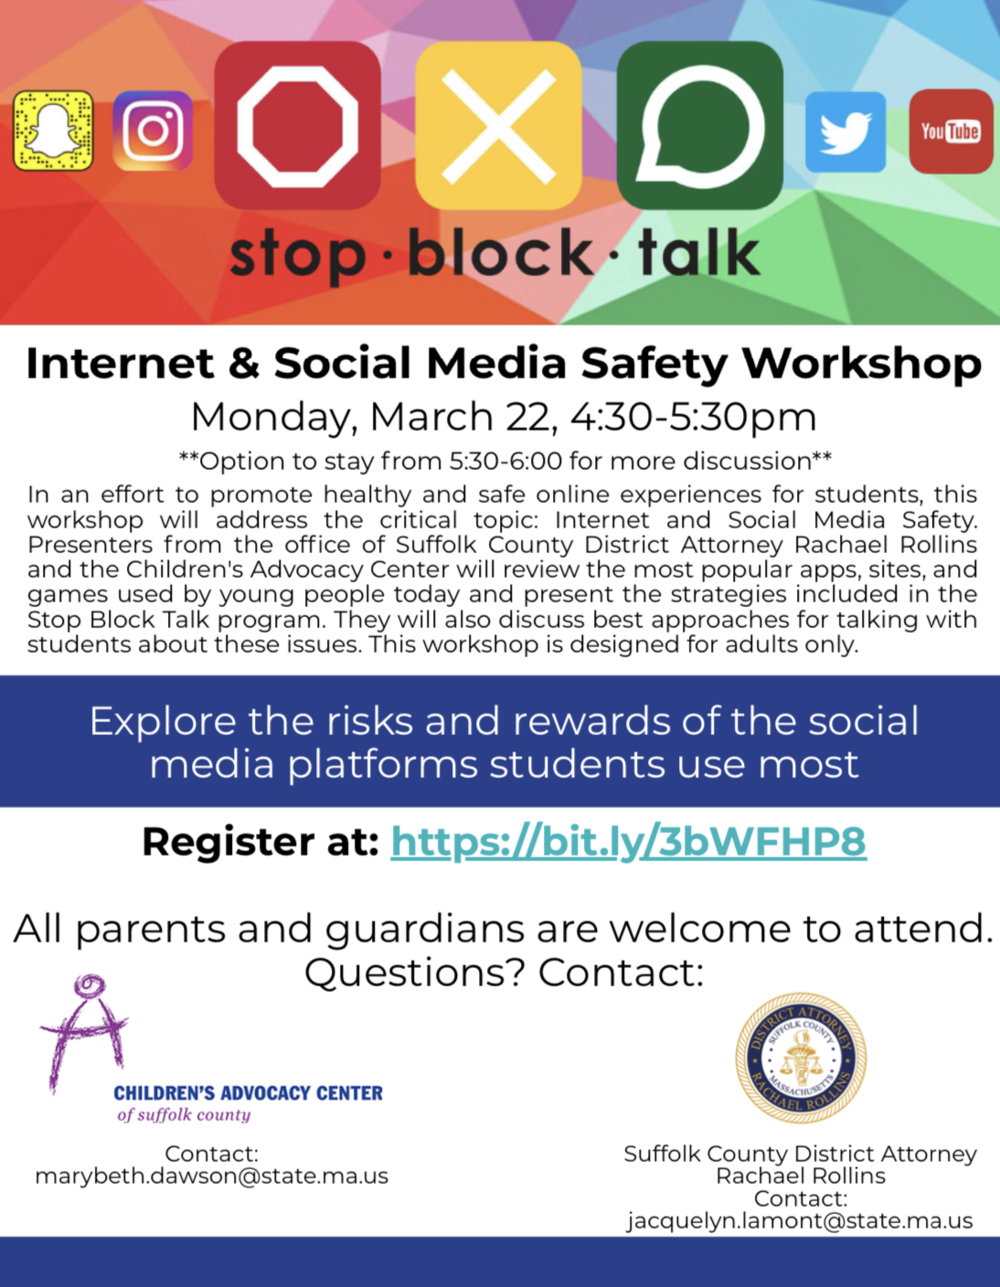 BPD in the Community: Upcoming Internet and Social Media Safety Workshop on Monday March 22, 2021